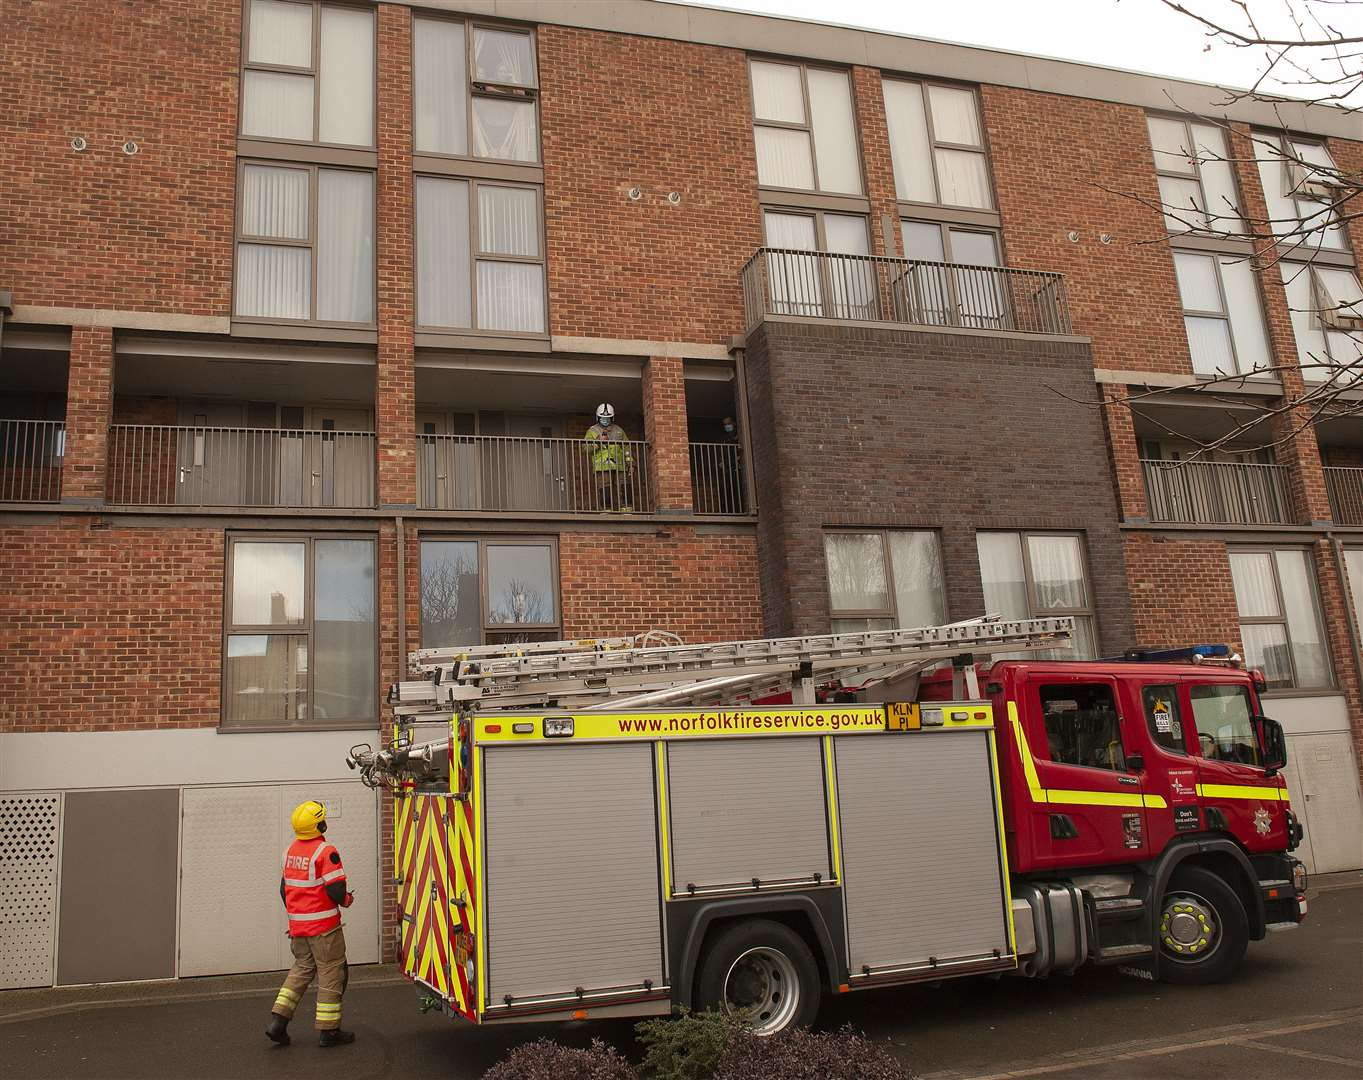 Incident at Hillington Square King's lynn Emergency Services at the scene.. (44289384)